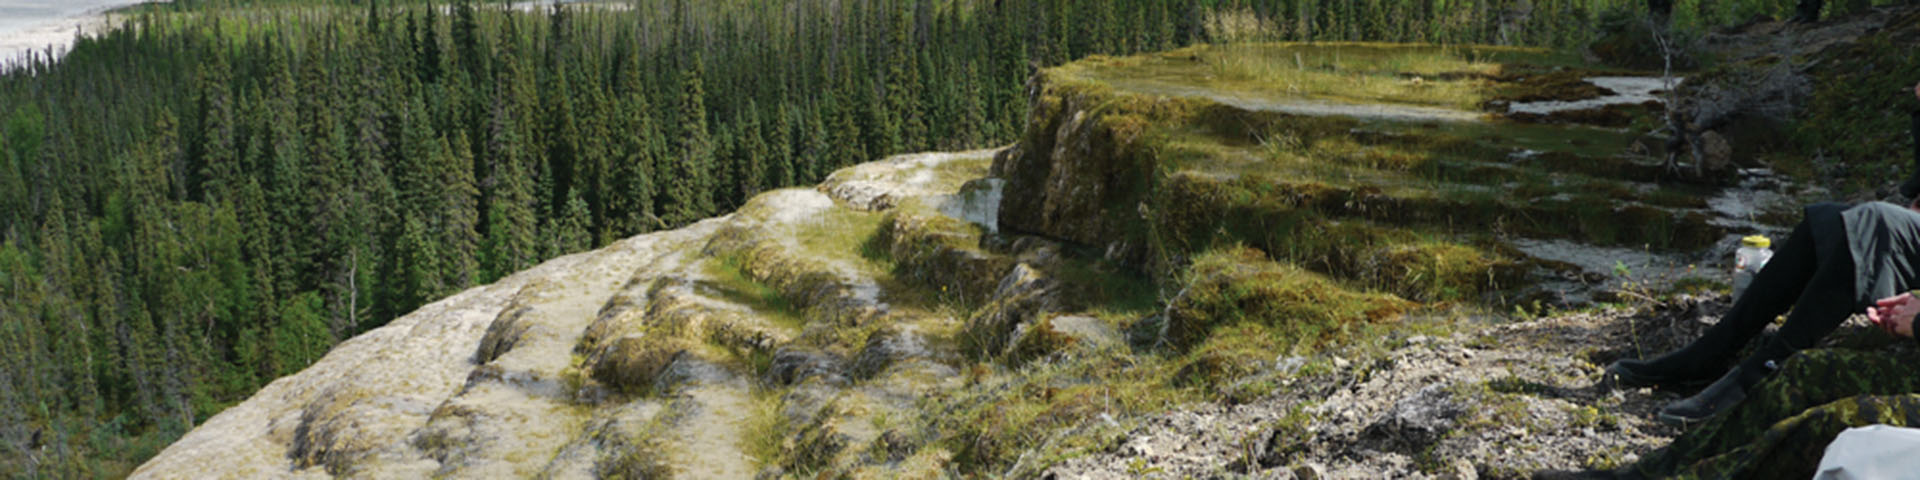 Redstone River, Northwest Territories by Canoe North Adventures - Image 317